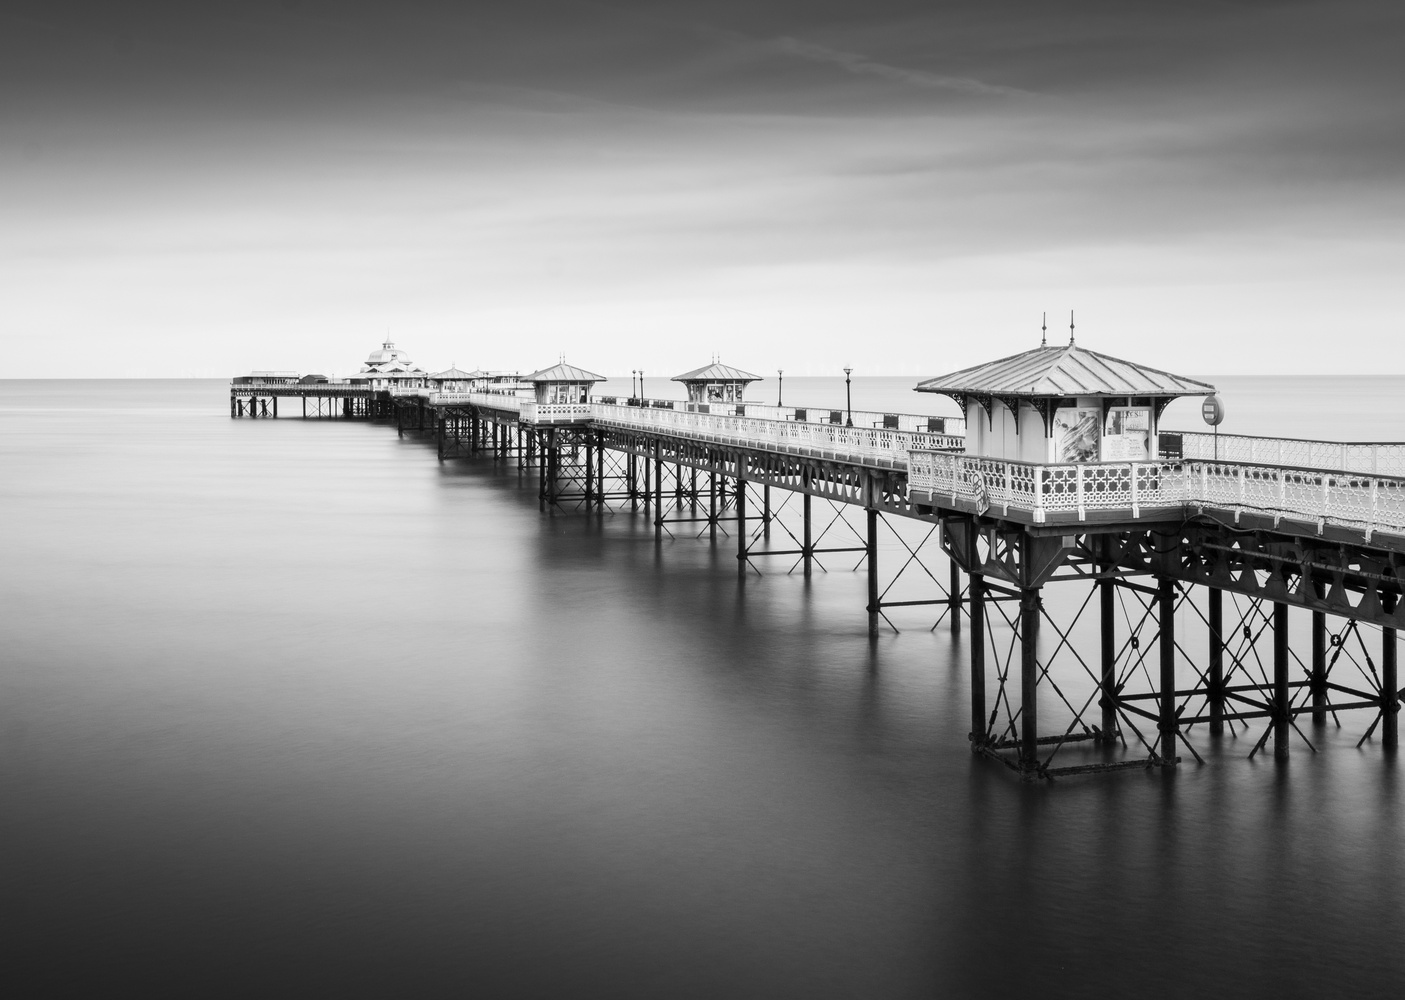 Pier by Stephen Norman